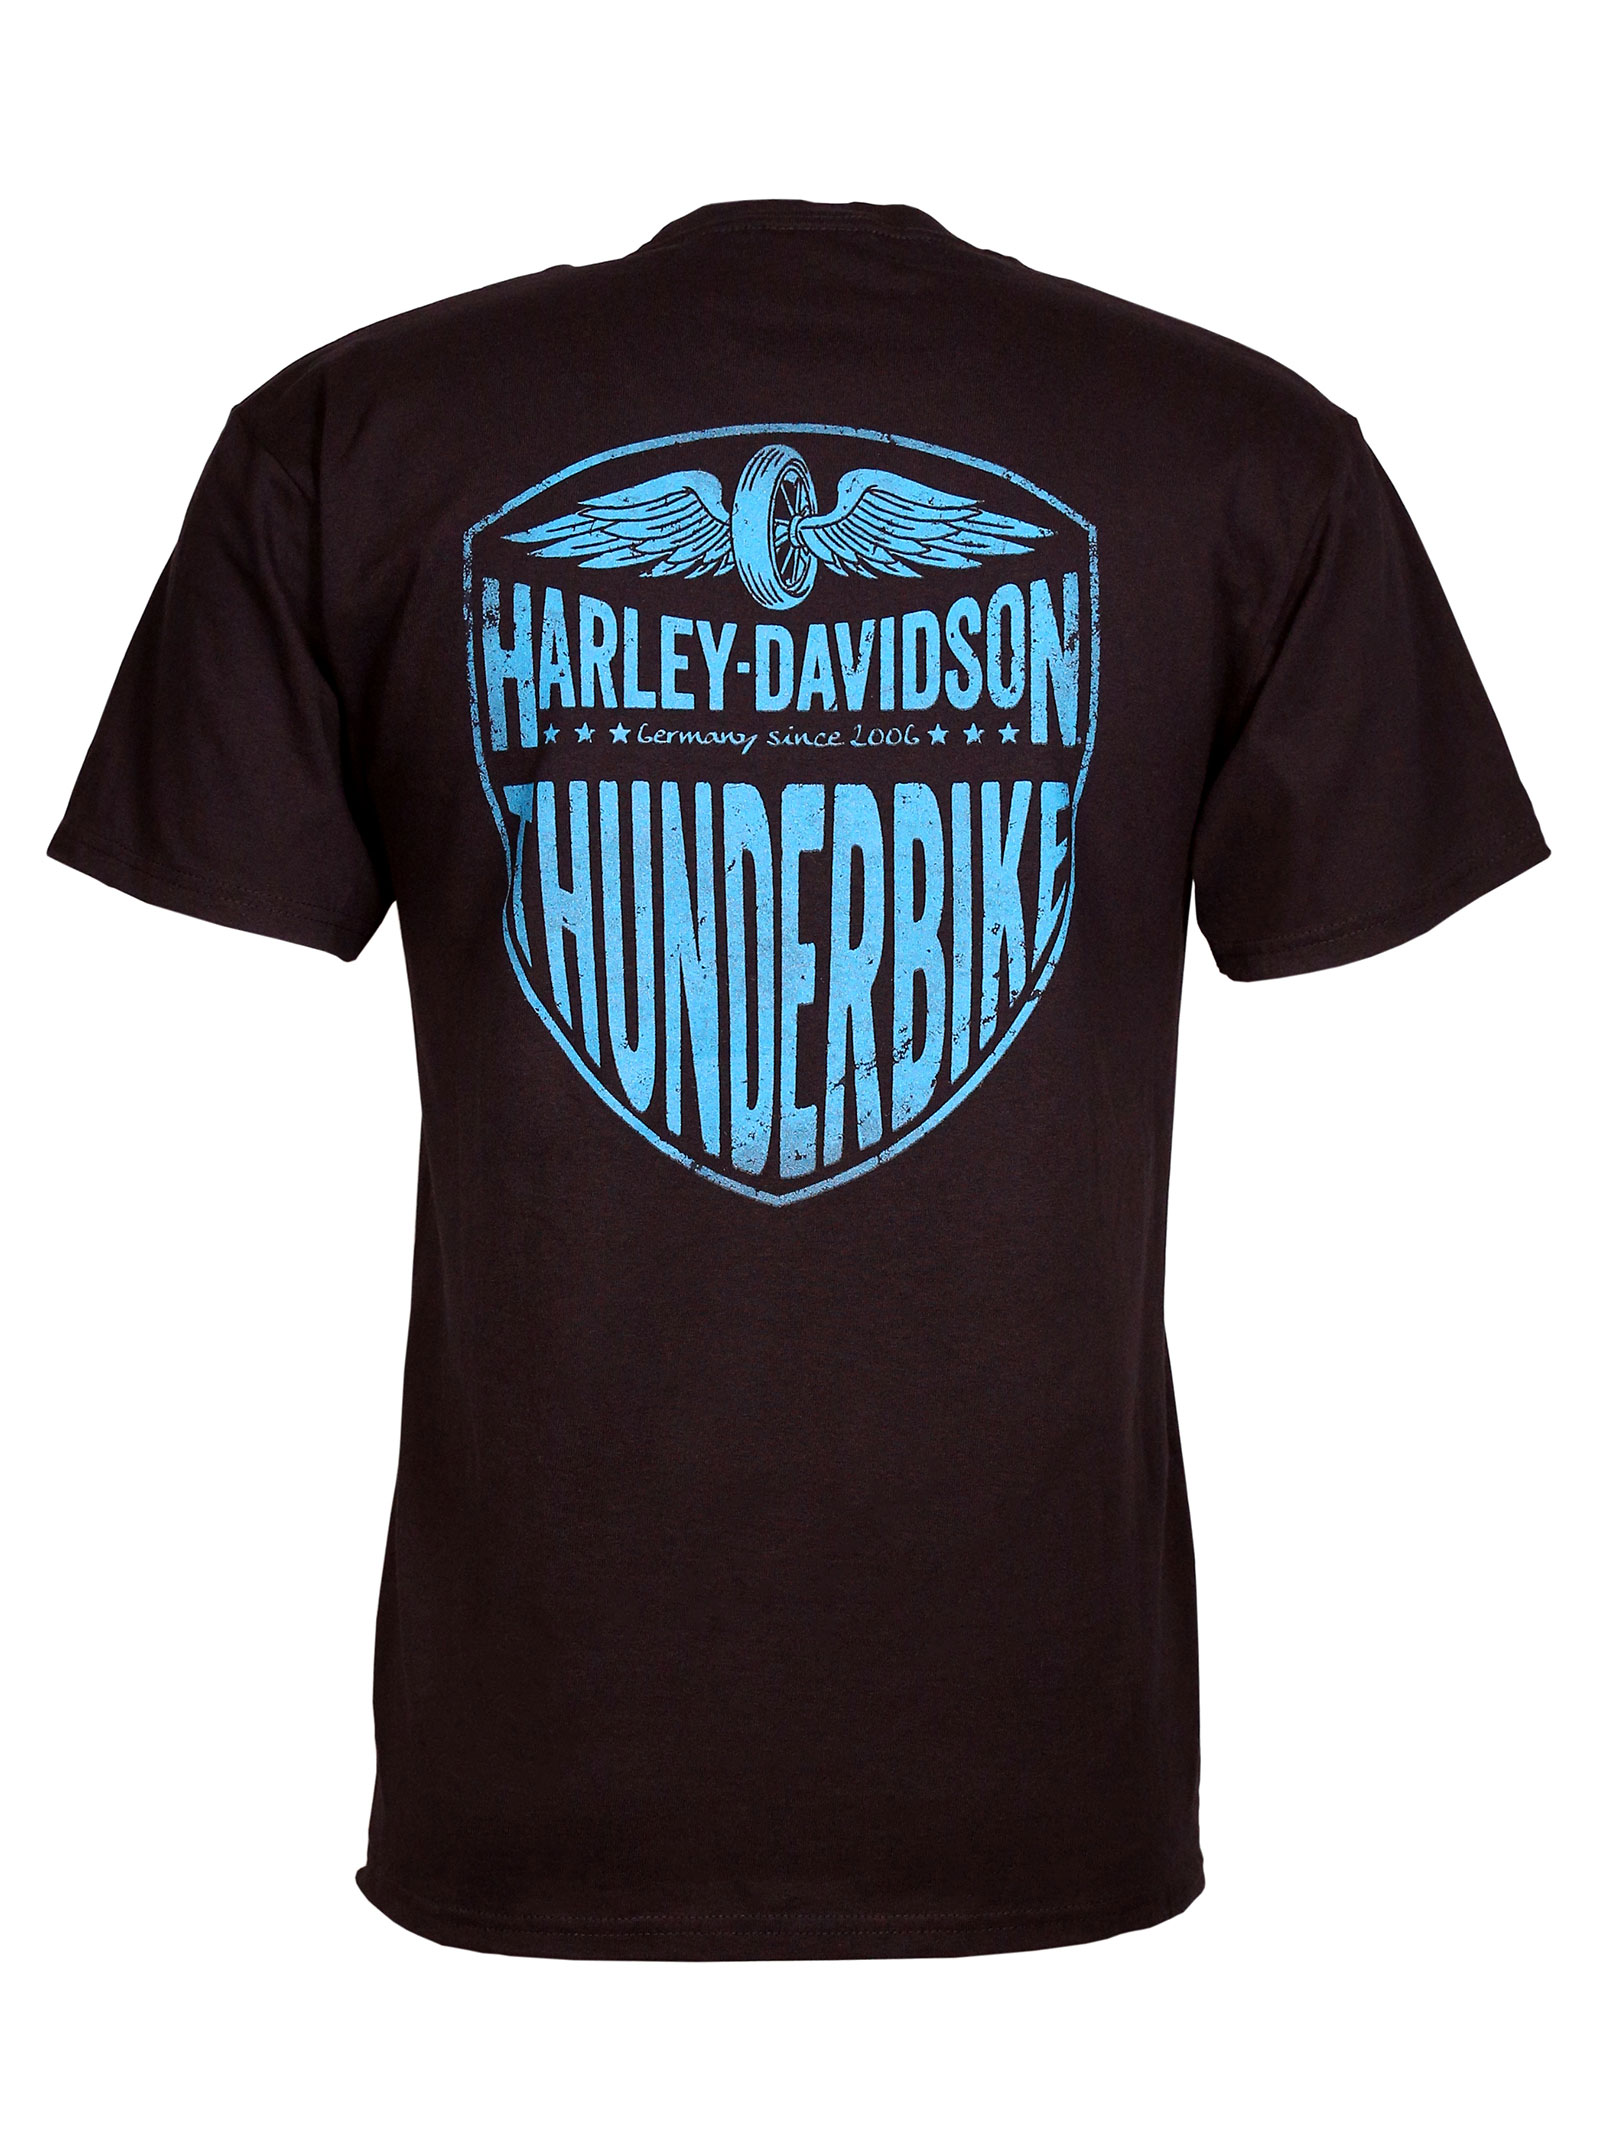 harley davidson t shirt immortal heritage im thunderbike. Black Bedroom Furniture Sets. Home Design Ideas